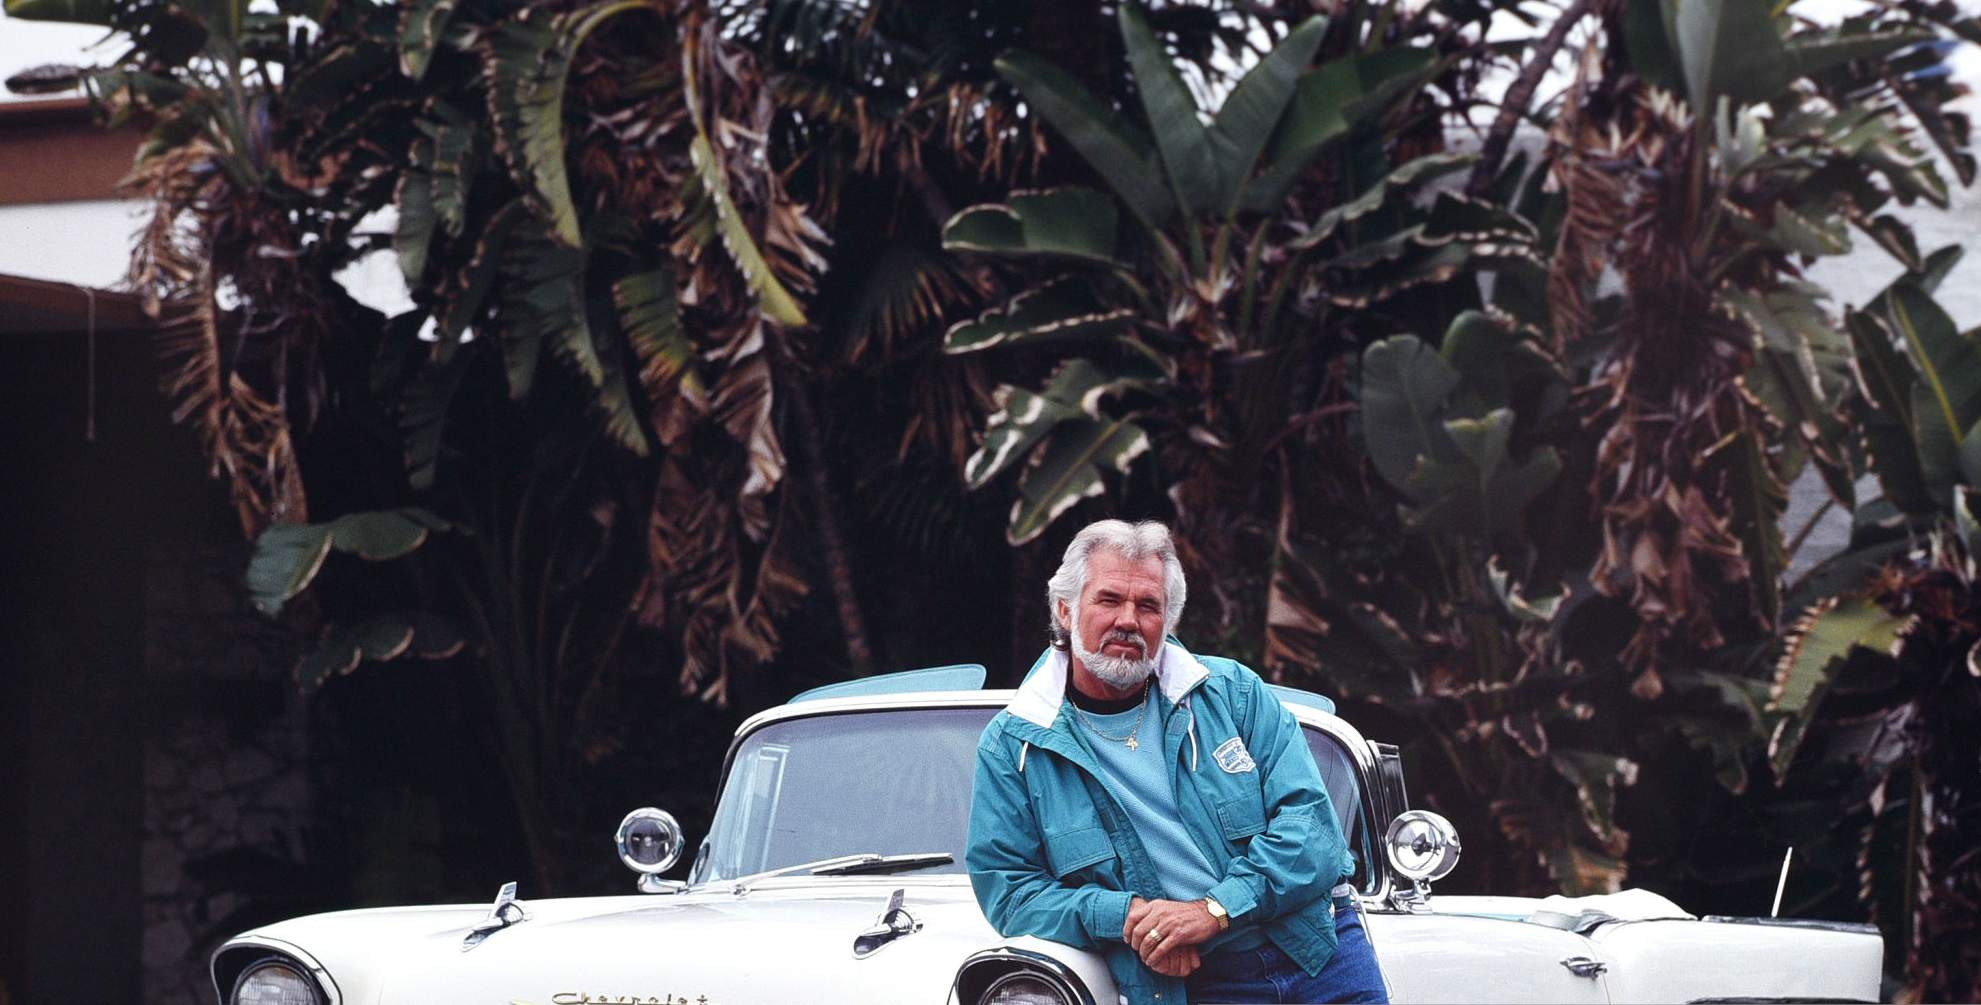 Marianne Gordon's late husband Kenny Rogers with his 1957 convertible Cadillac January 15, 1990 in Beverly Hills, Los Angeles, California